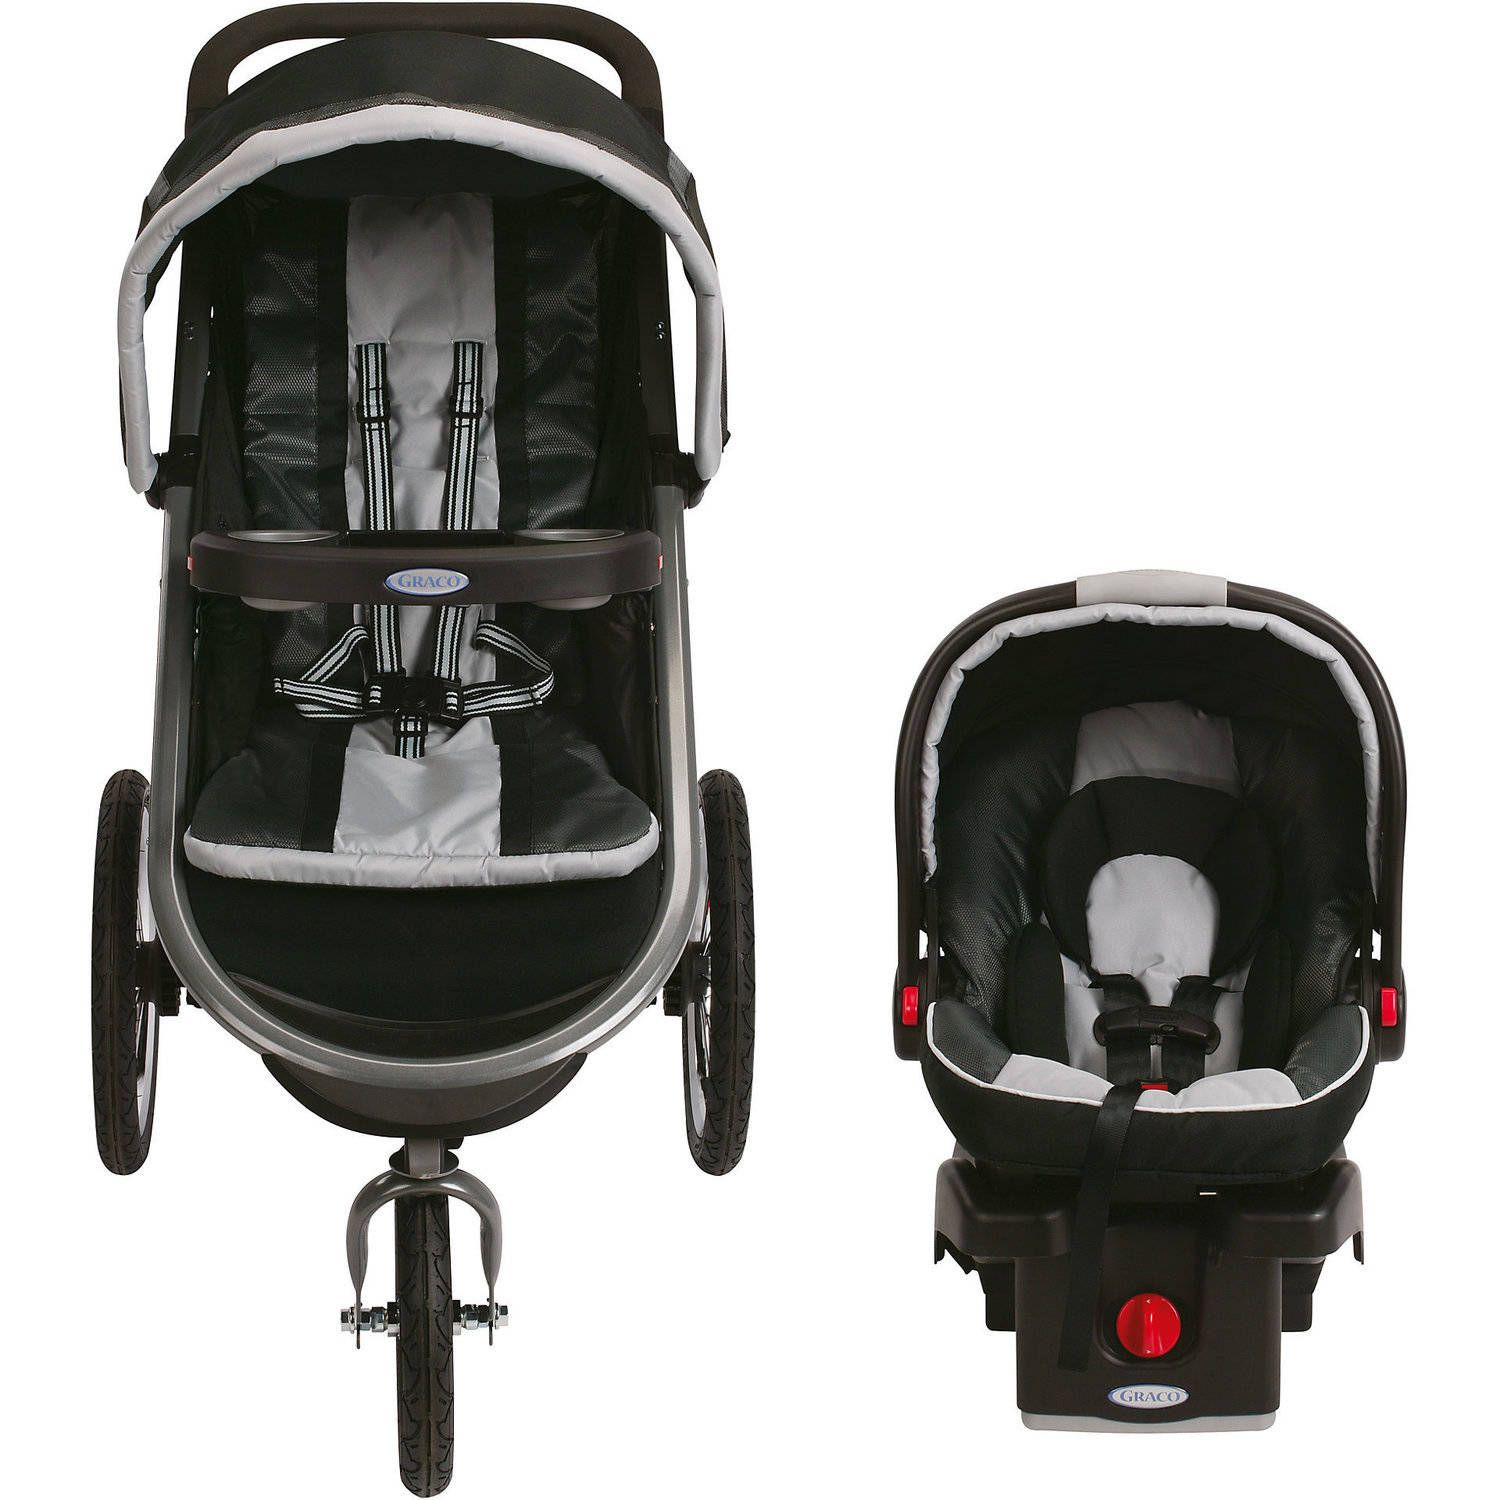 47 reference of stroller Travel System graco fastaction in